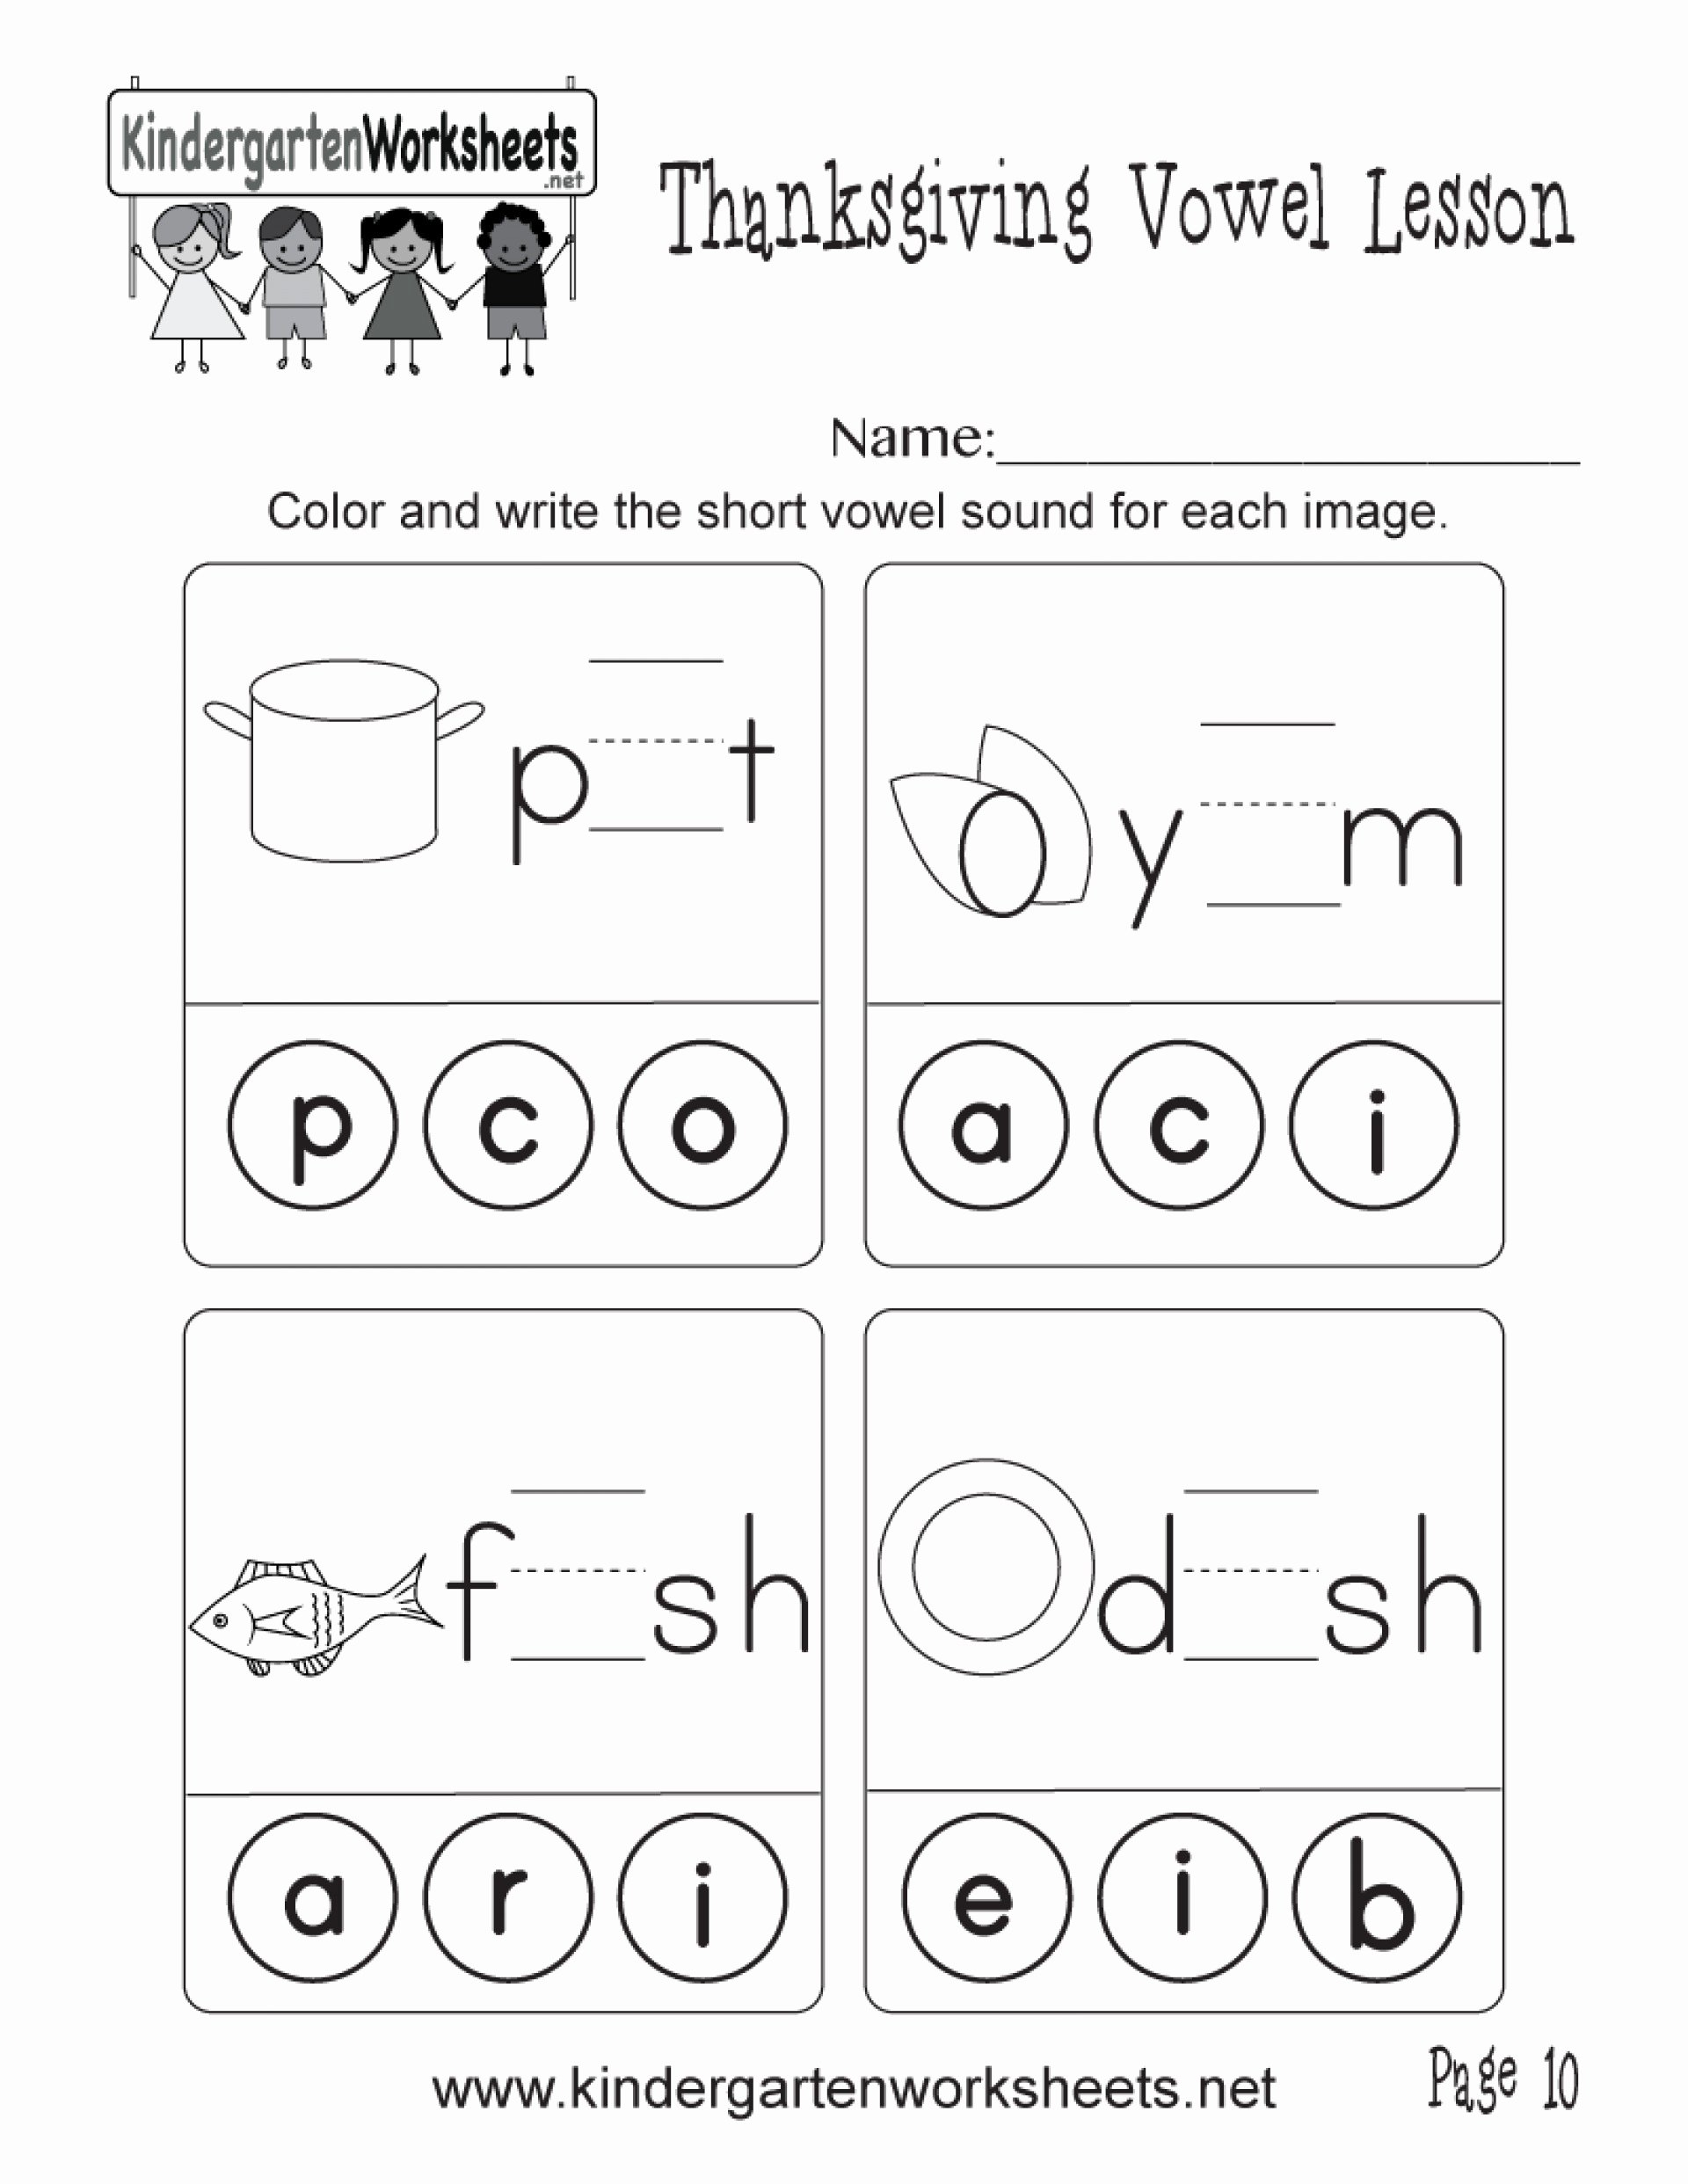 Learning Colors Worksheets for Preschoolers Lovely Coloring Pages Printable Color by Number Pages Art 3